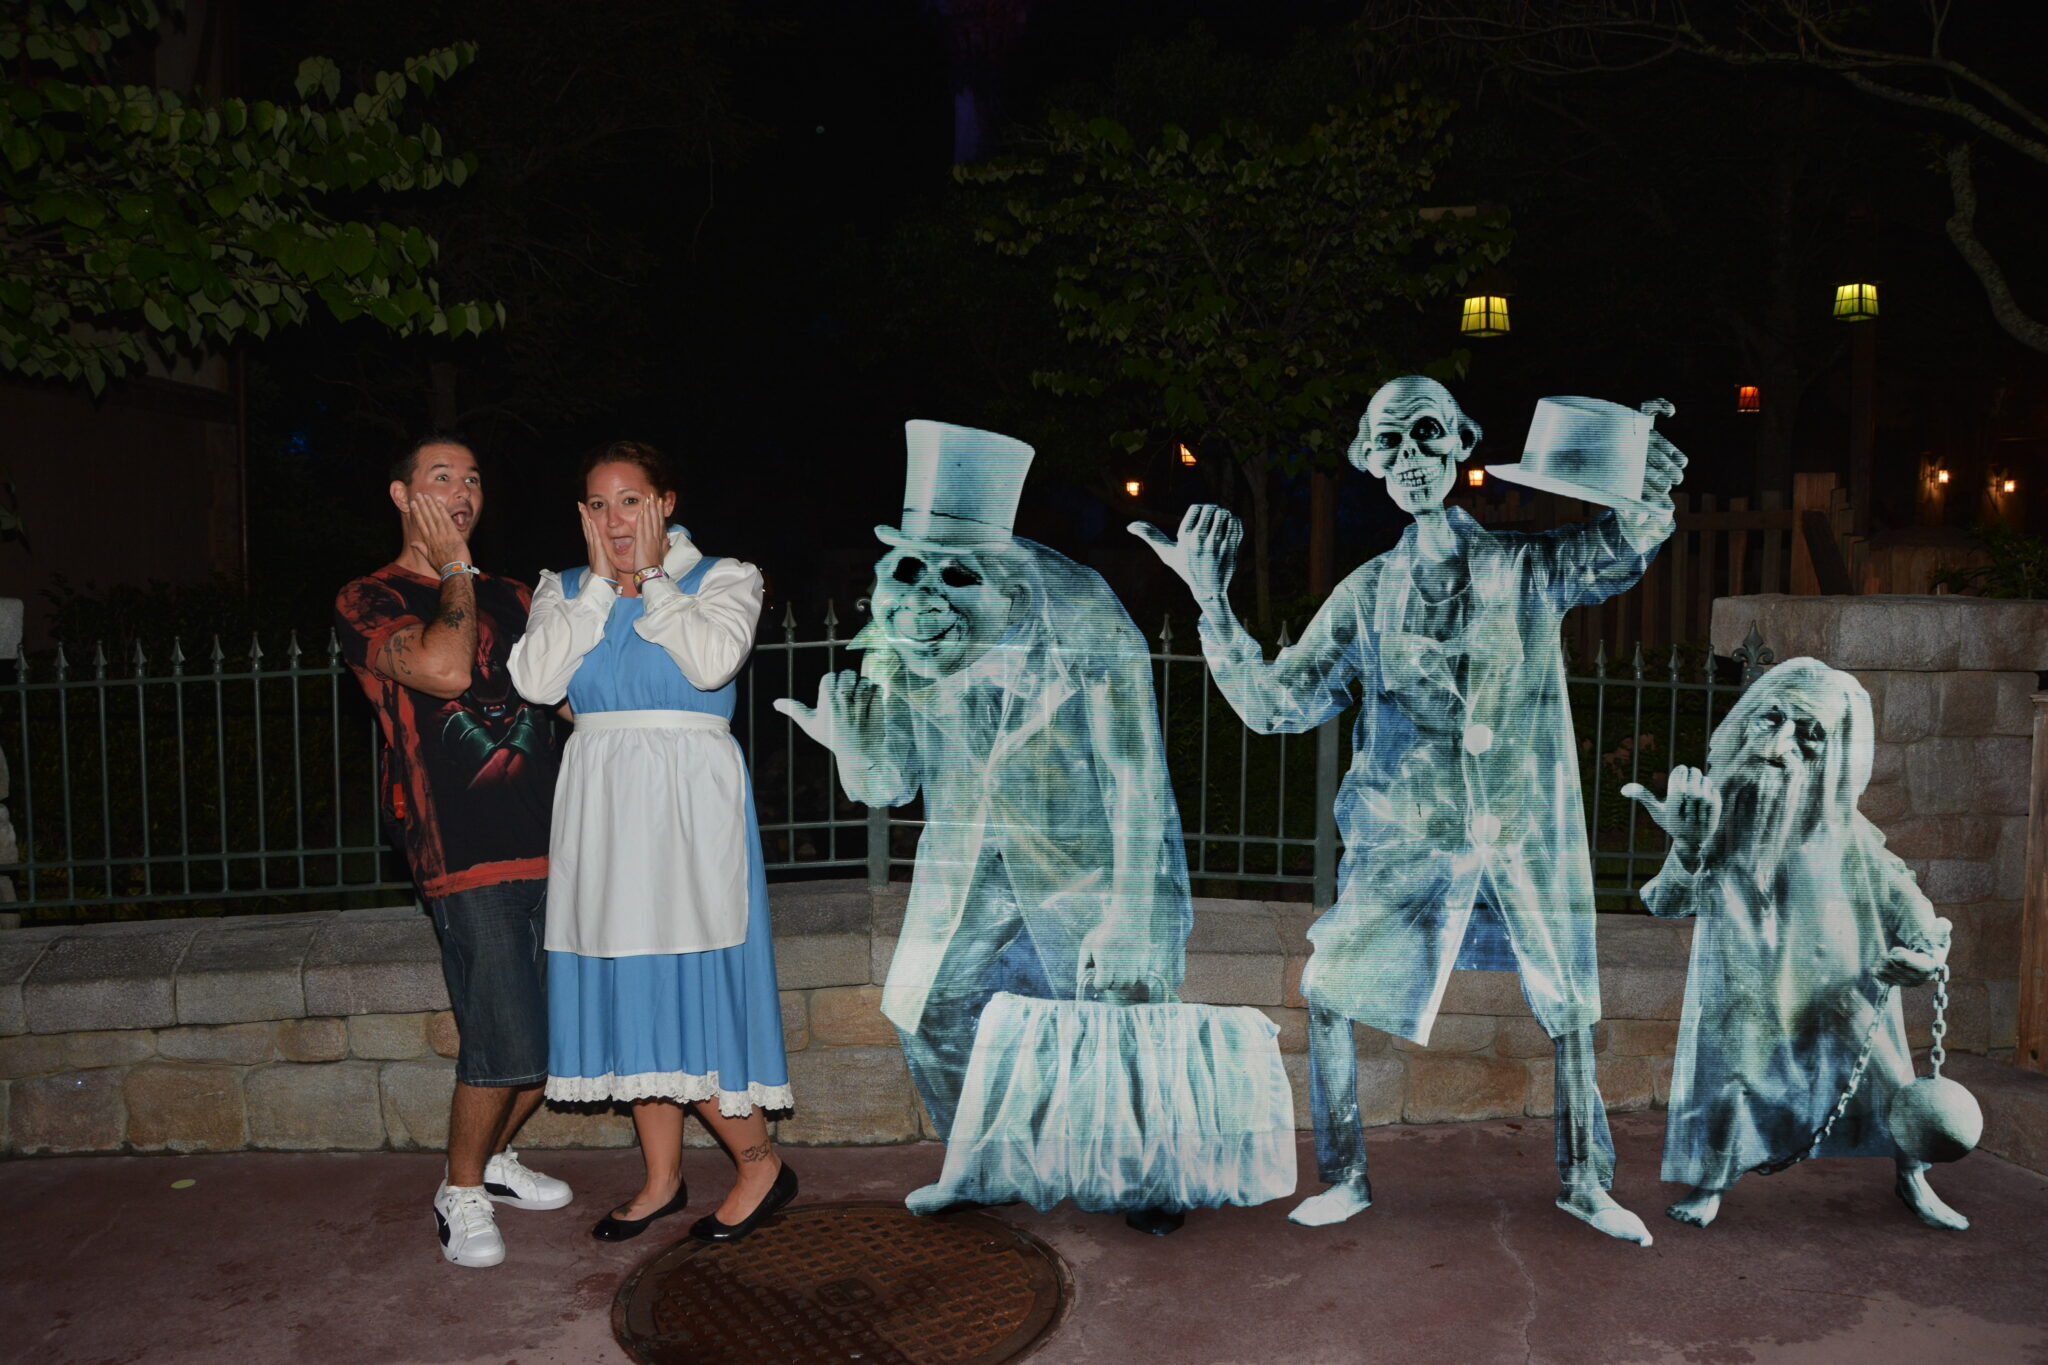 Follow these Mickey's Not So Scary Halloween Party tips and don't miss out on the fun magic shots available.